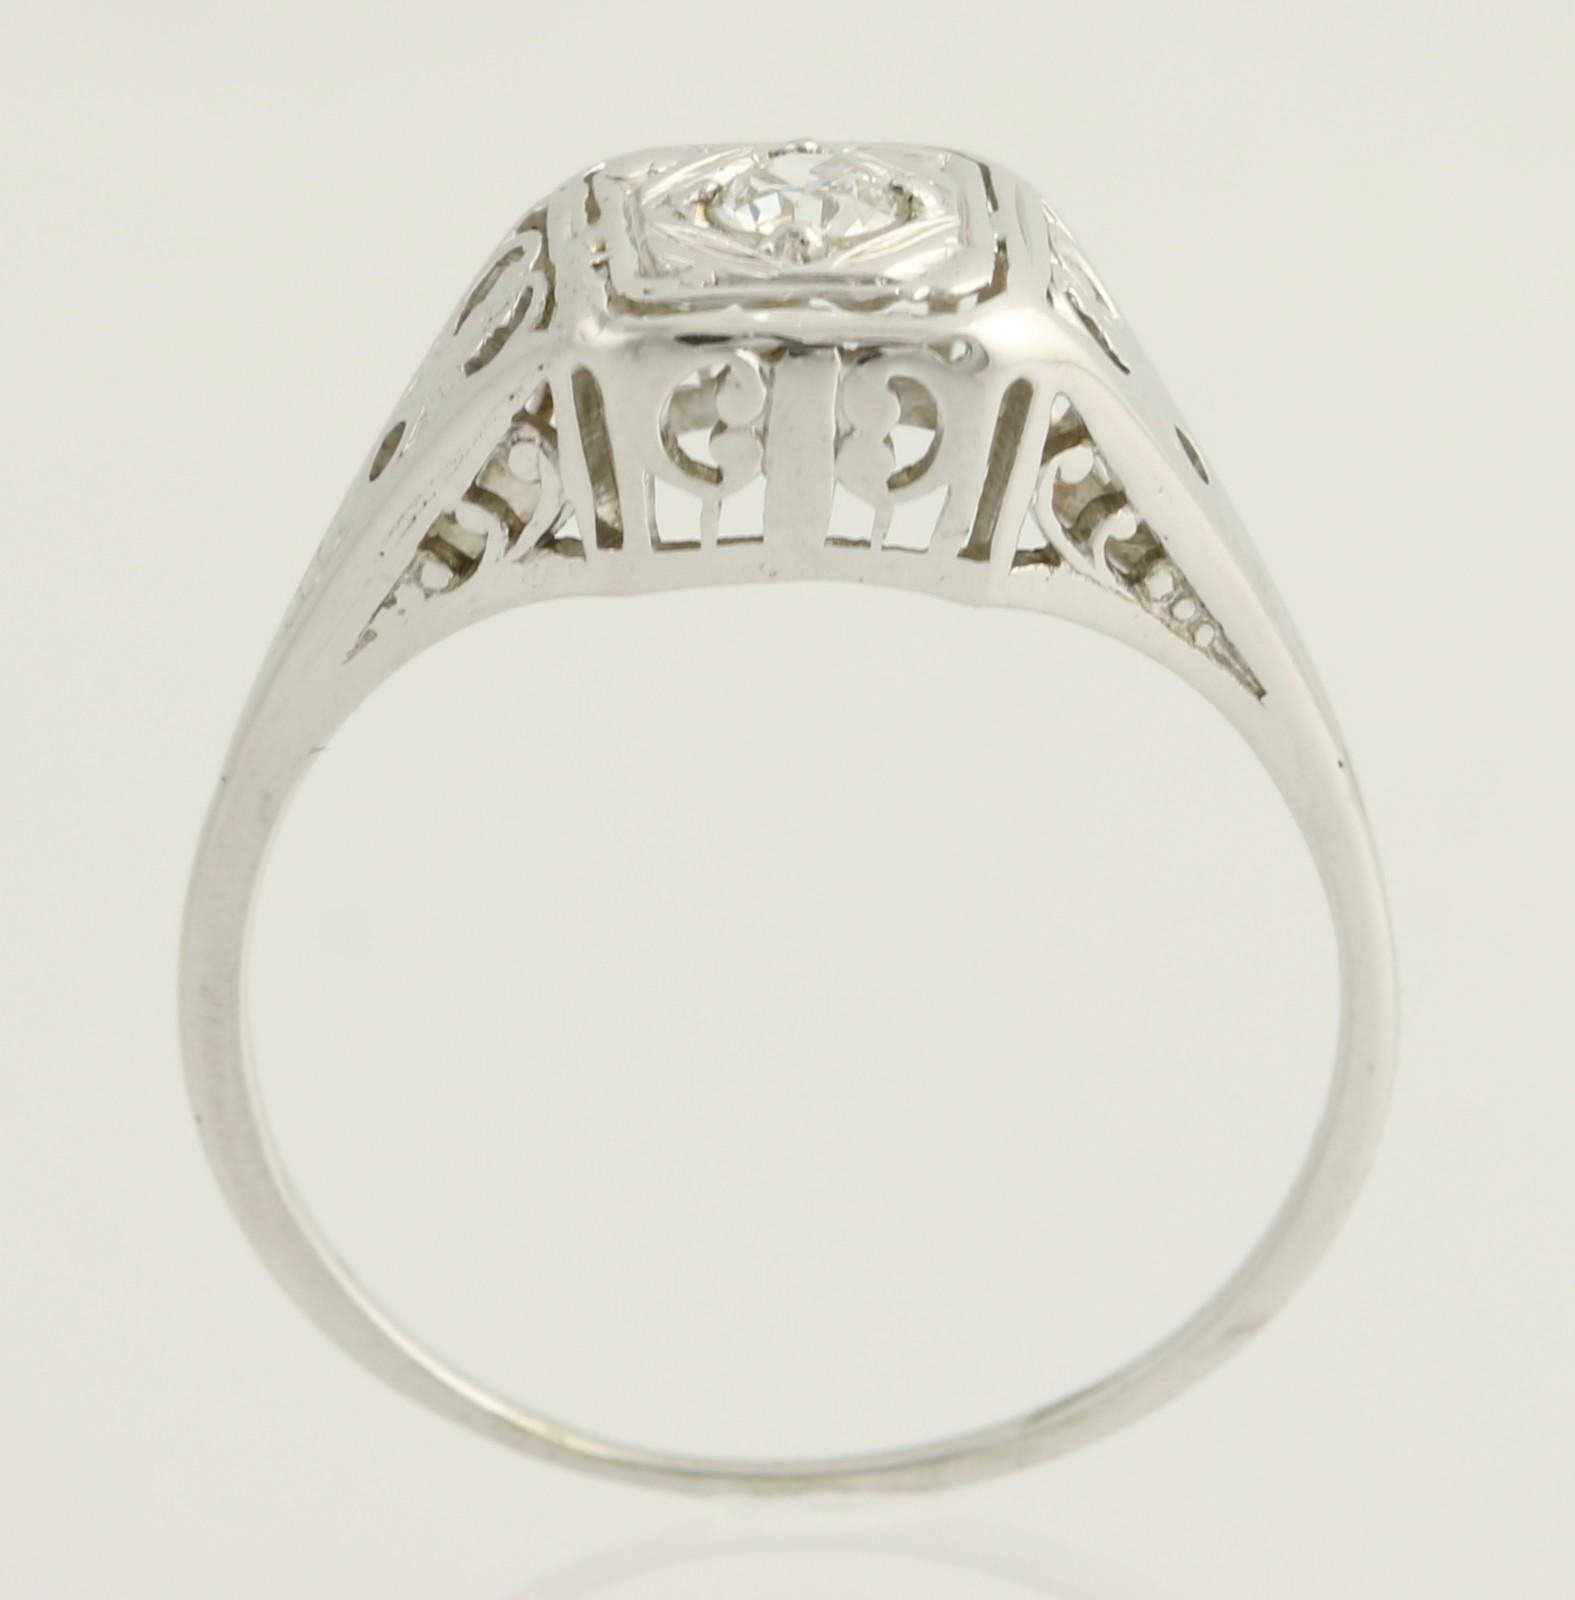 Art Deco Diamond Solitaire Engagement Ring 20k White Gold Size 7 from wilson